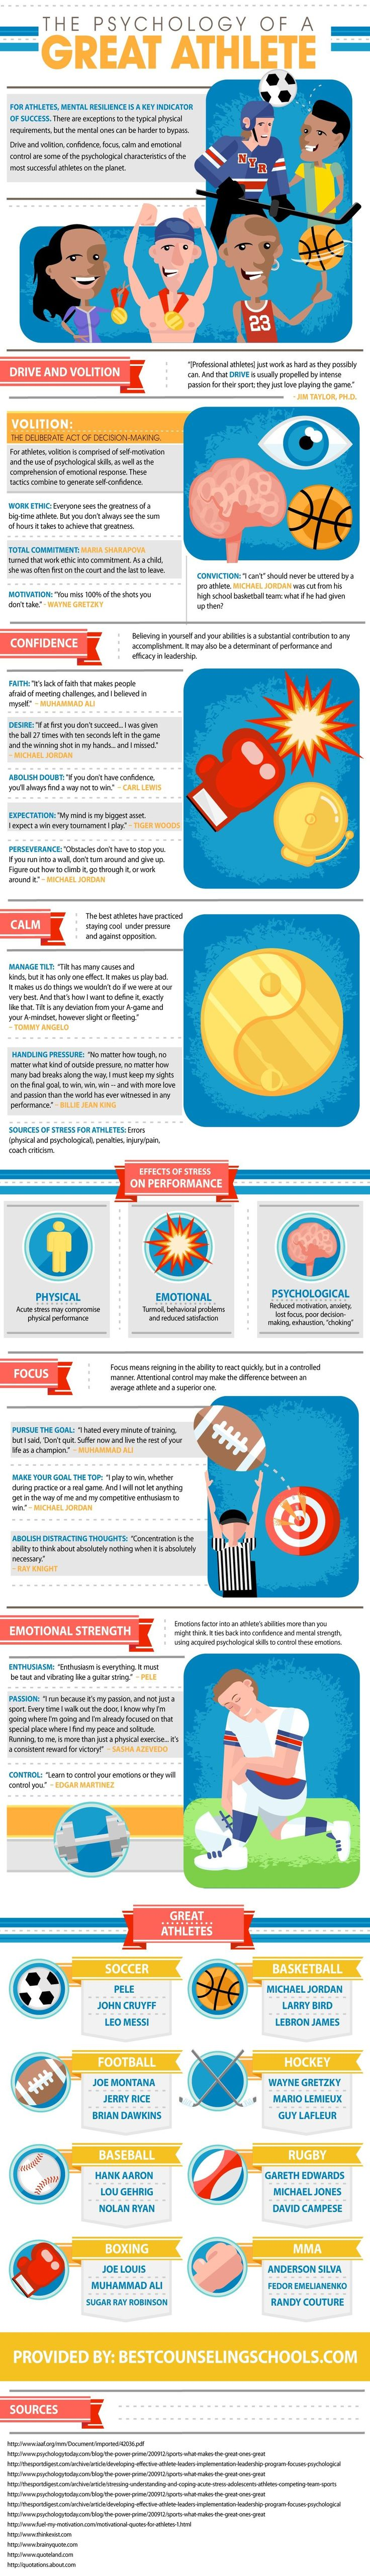 INFOGRAPHIC: The Psychology of a Great Athlete #category5ive #c5fl c5fl.com